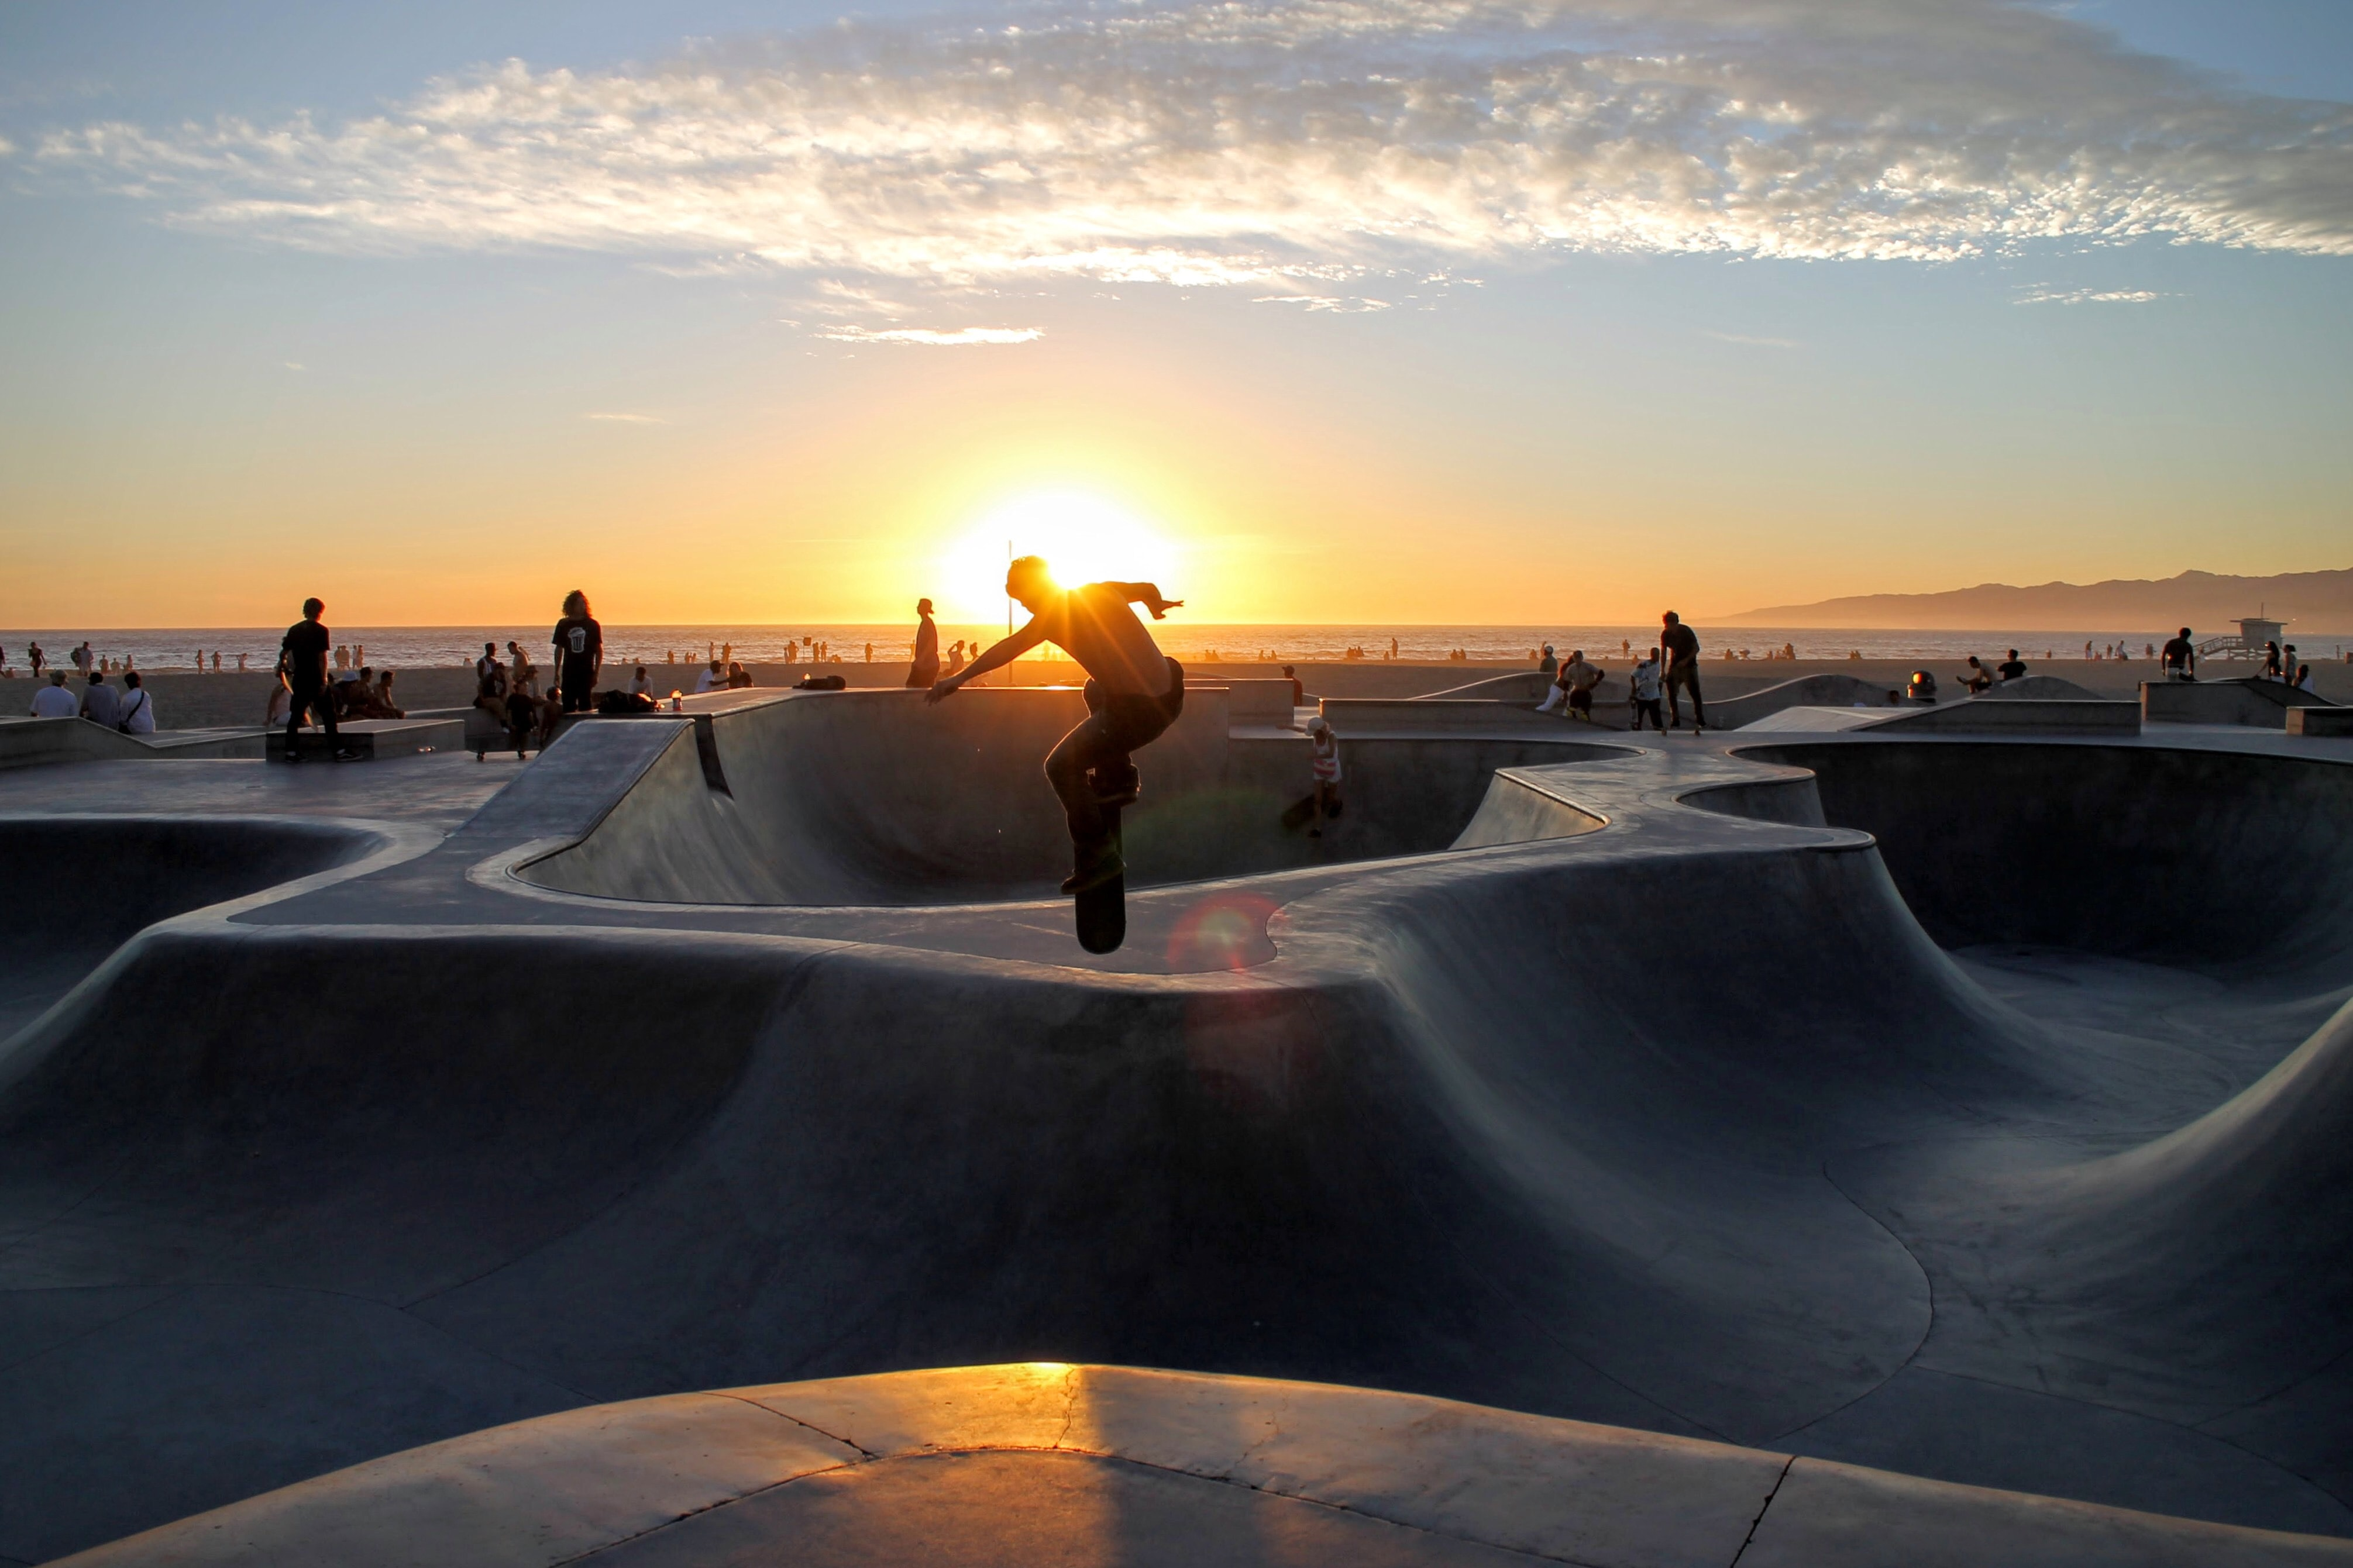 silhouette photo of man riding skateboard on skateboard ramp field